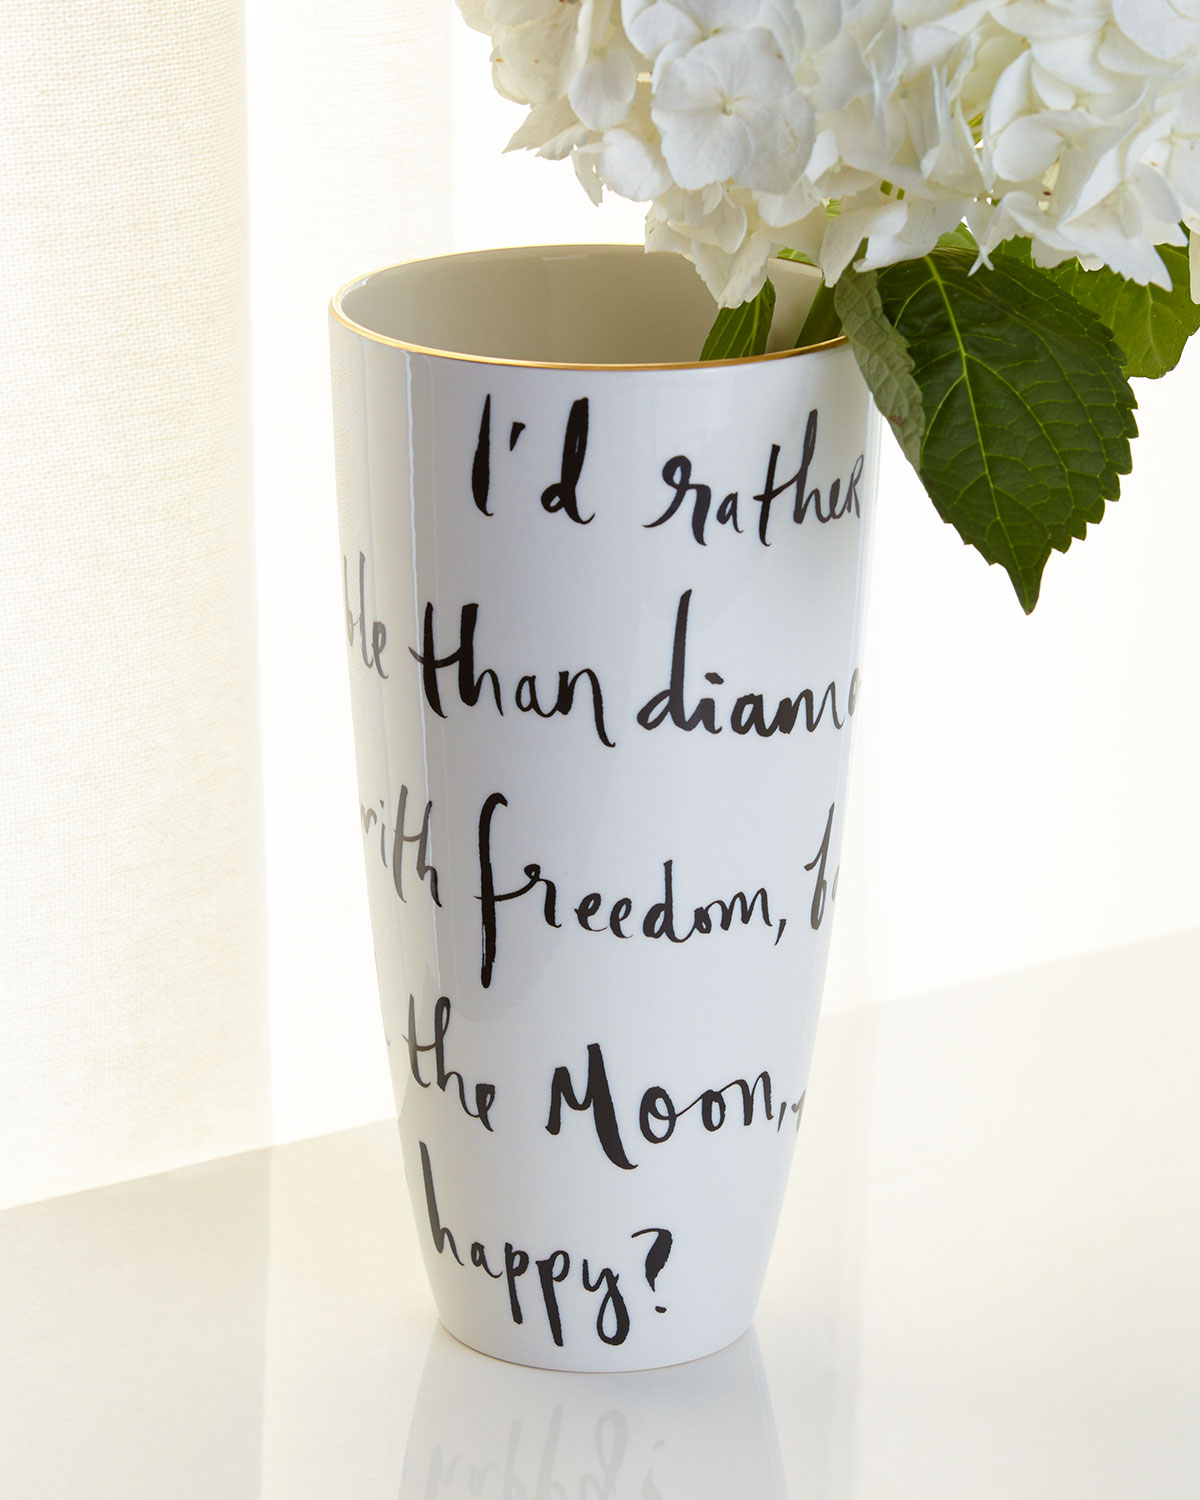 Daisy Place Wit & Wisdom Vase, White/Black